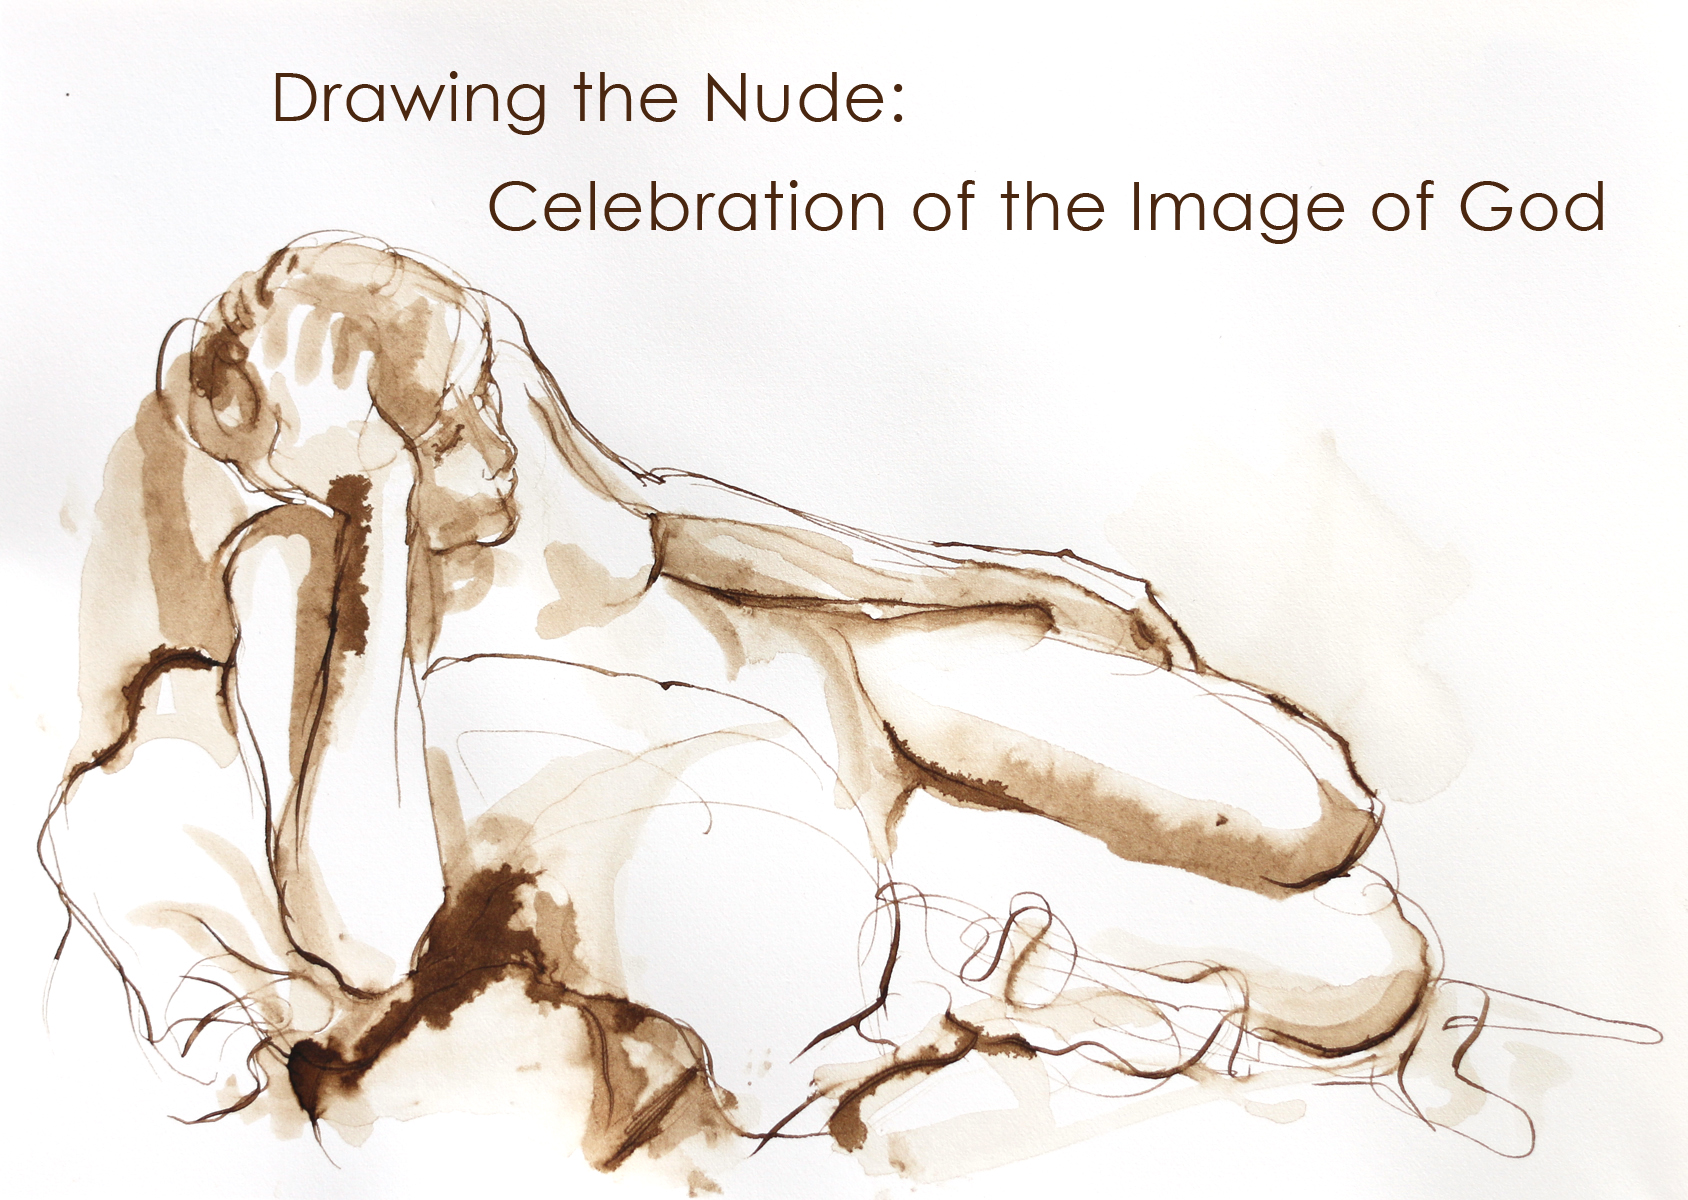 Drawing the Nude – A Celebration of the Image of God